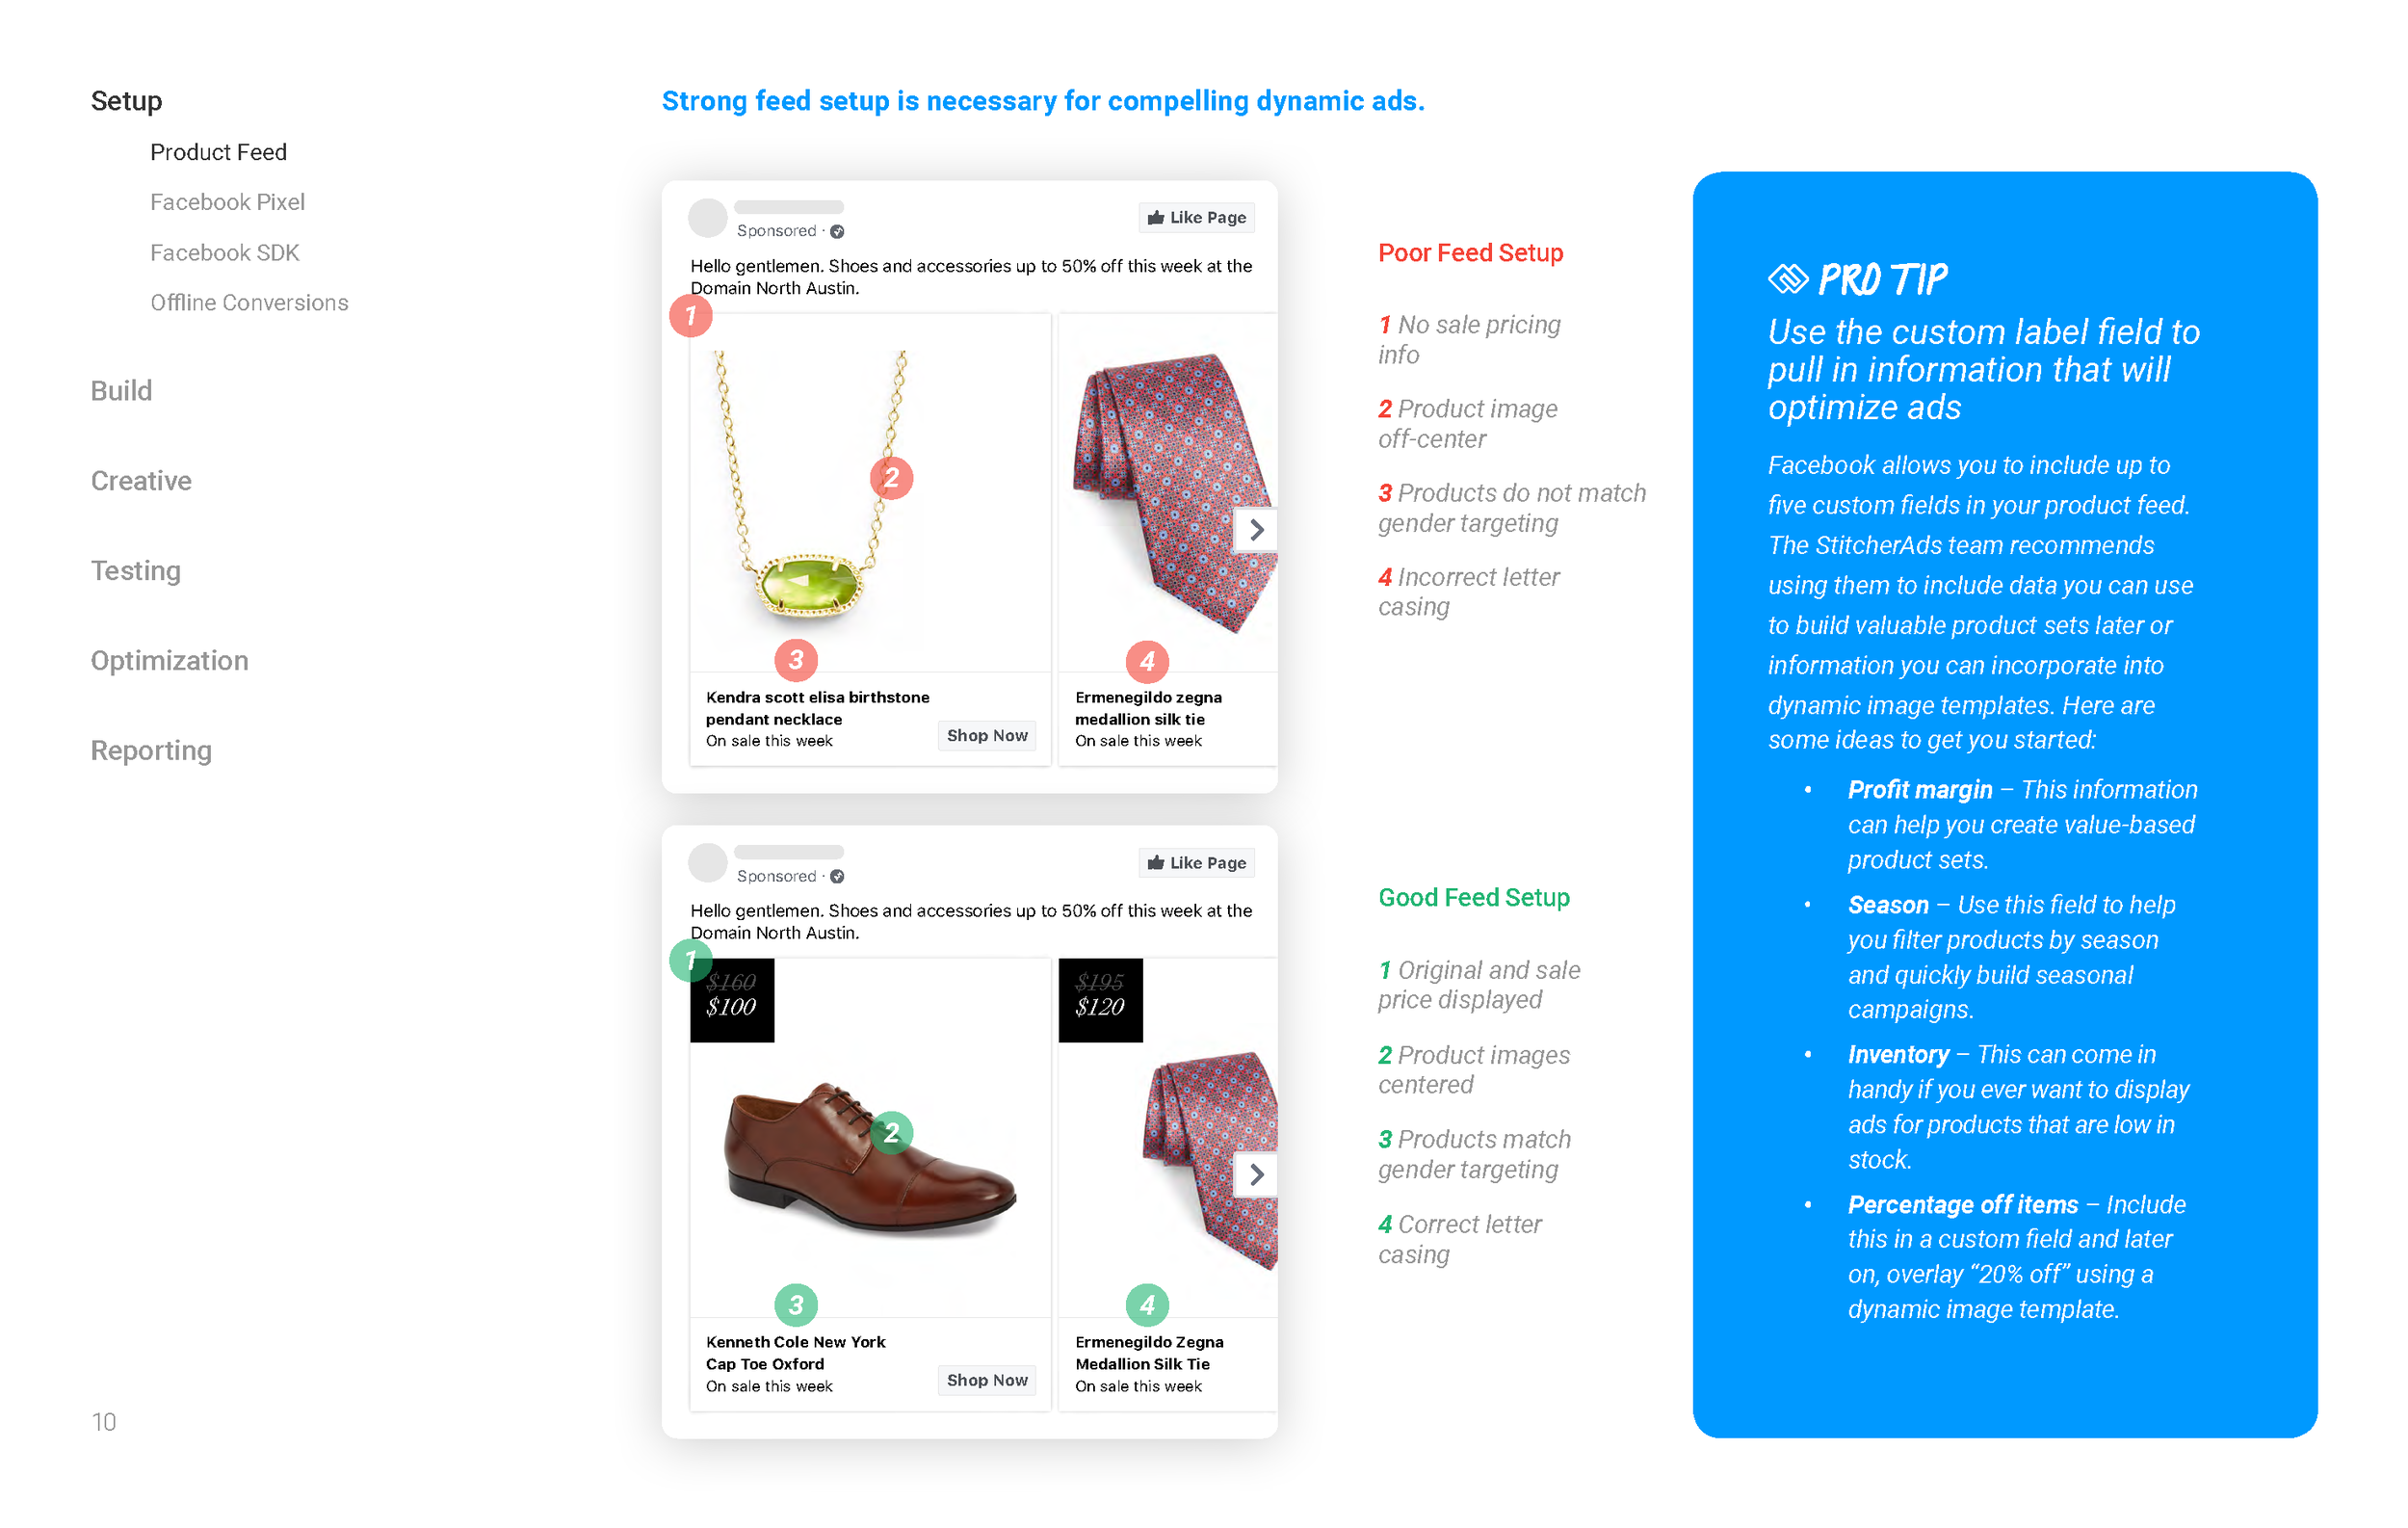 retail playbook _Page_010.png